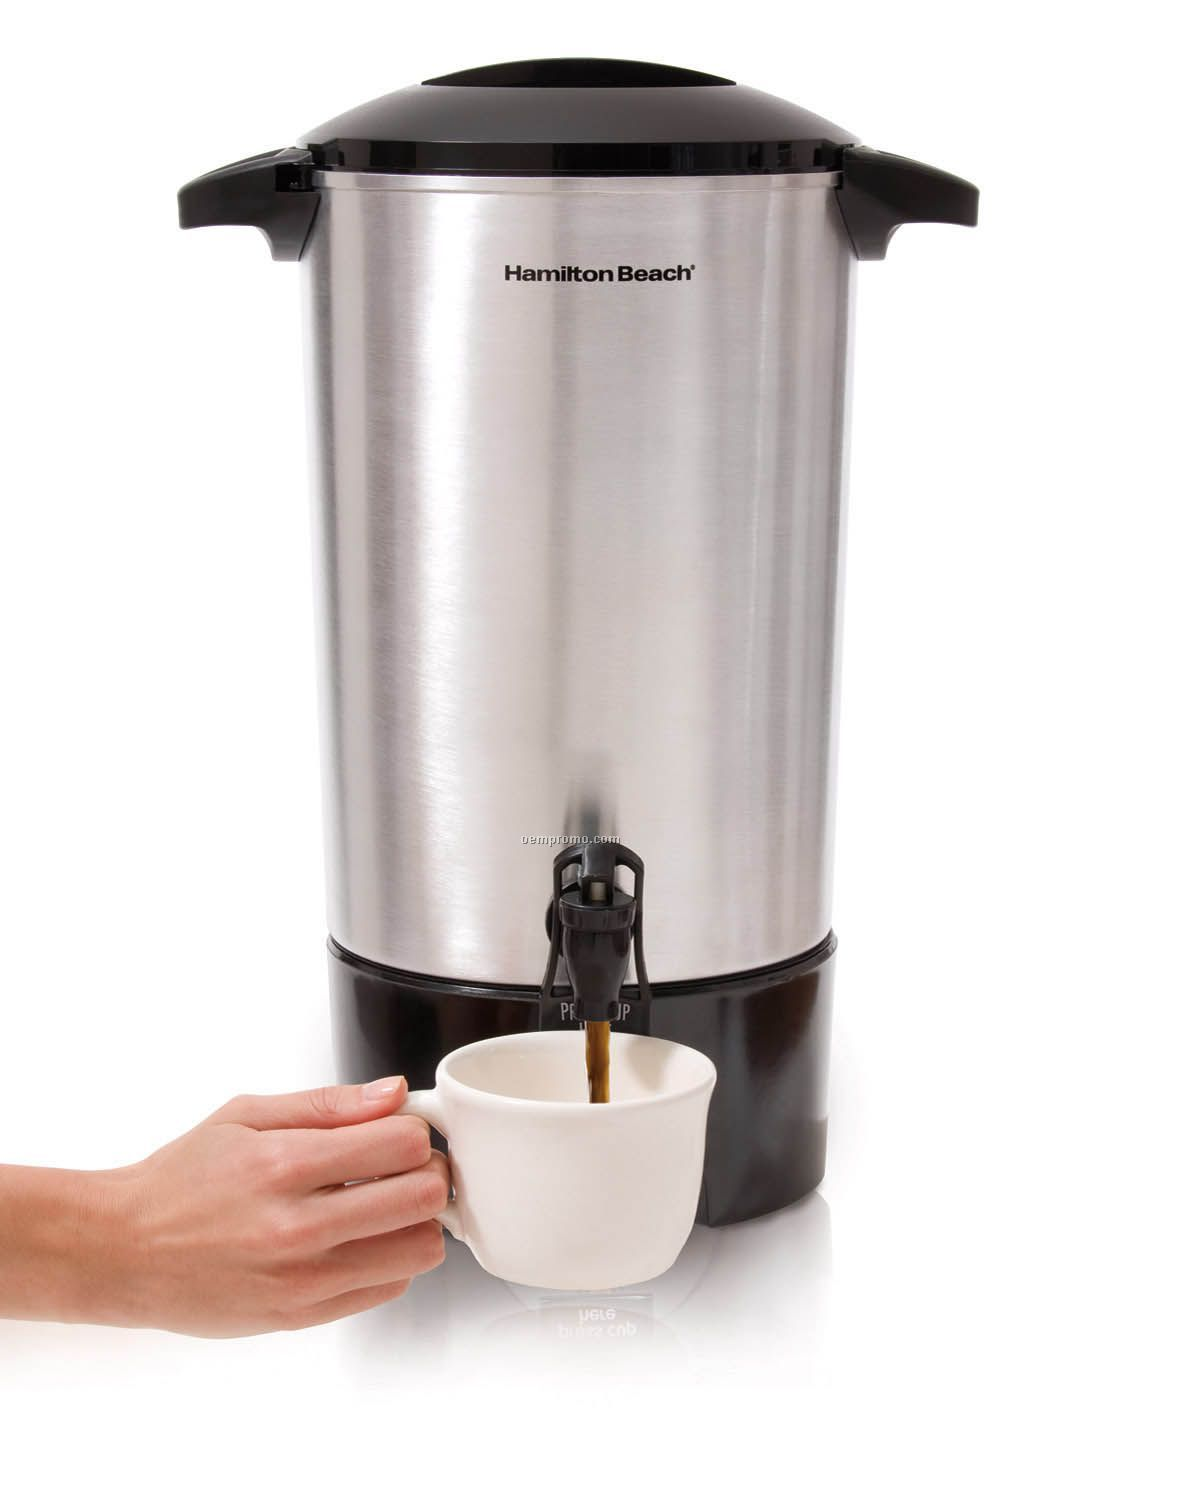 Cleaning Large Coffee Maker : Hamilton Beach 42 Cup Coffee Urn,China Wholesale Hamilton Beach 42 Cup Coffee Urn